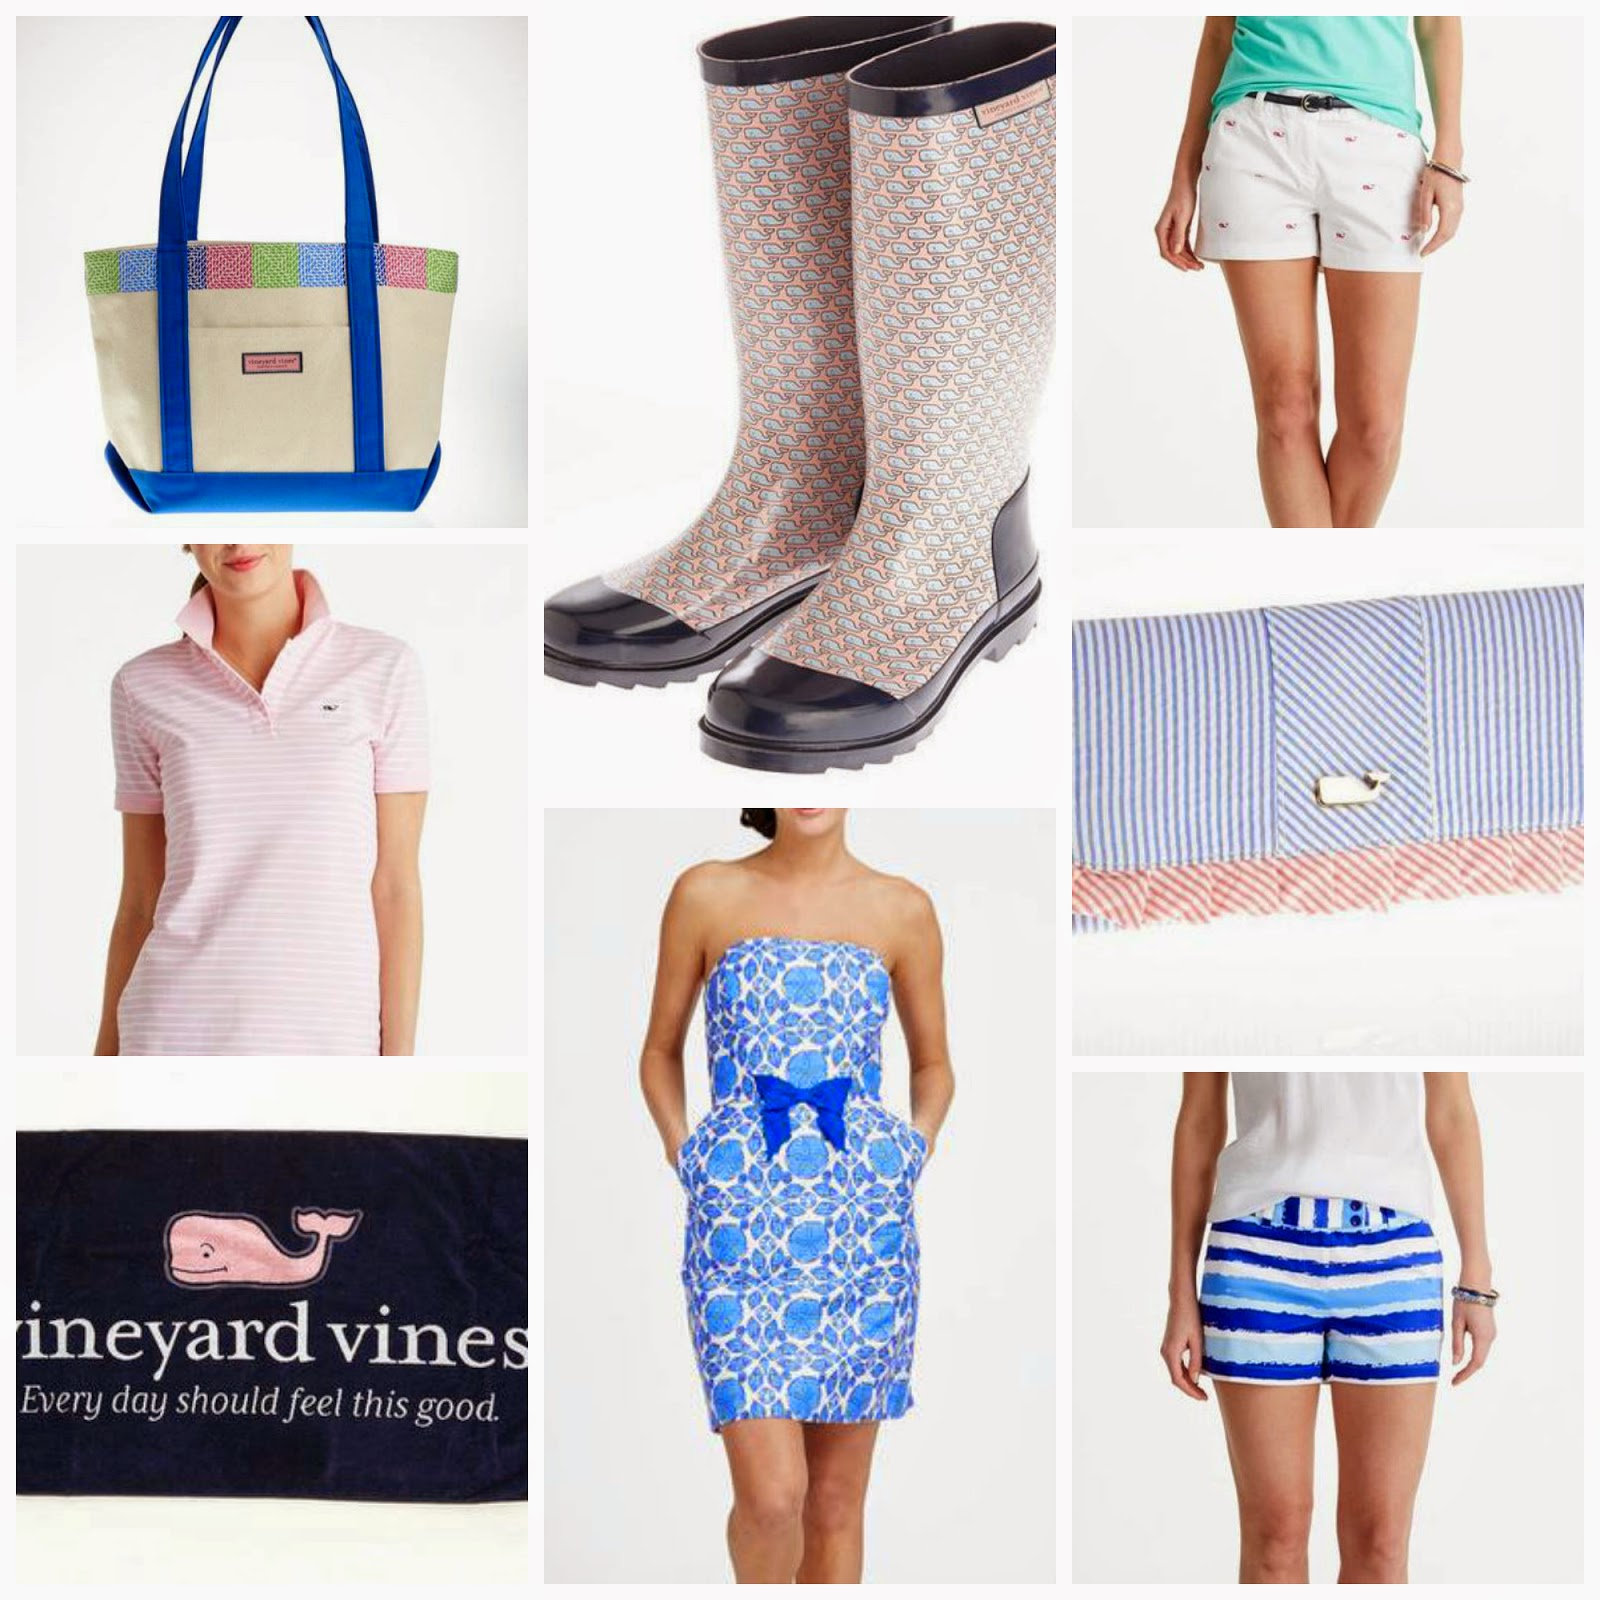 Nautical by Nature | Vineyard Vines sale summer 2014